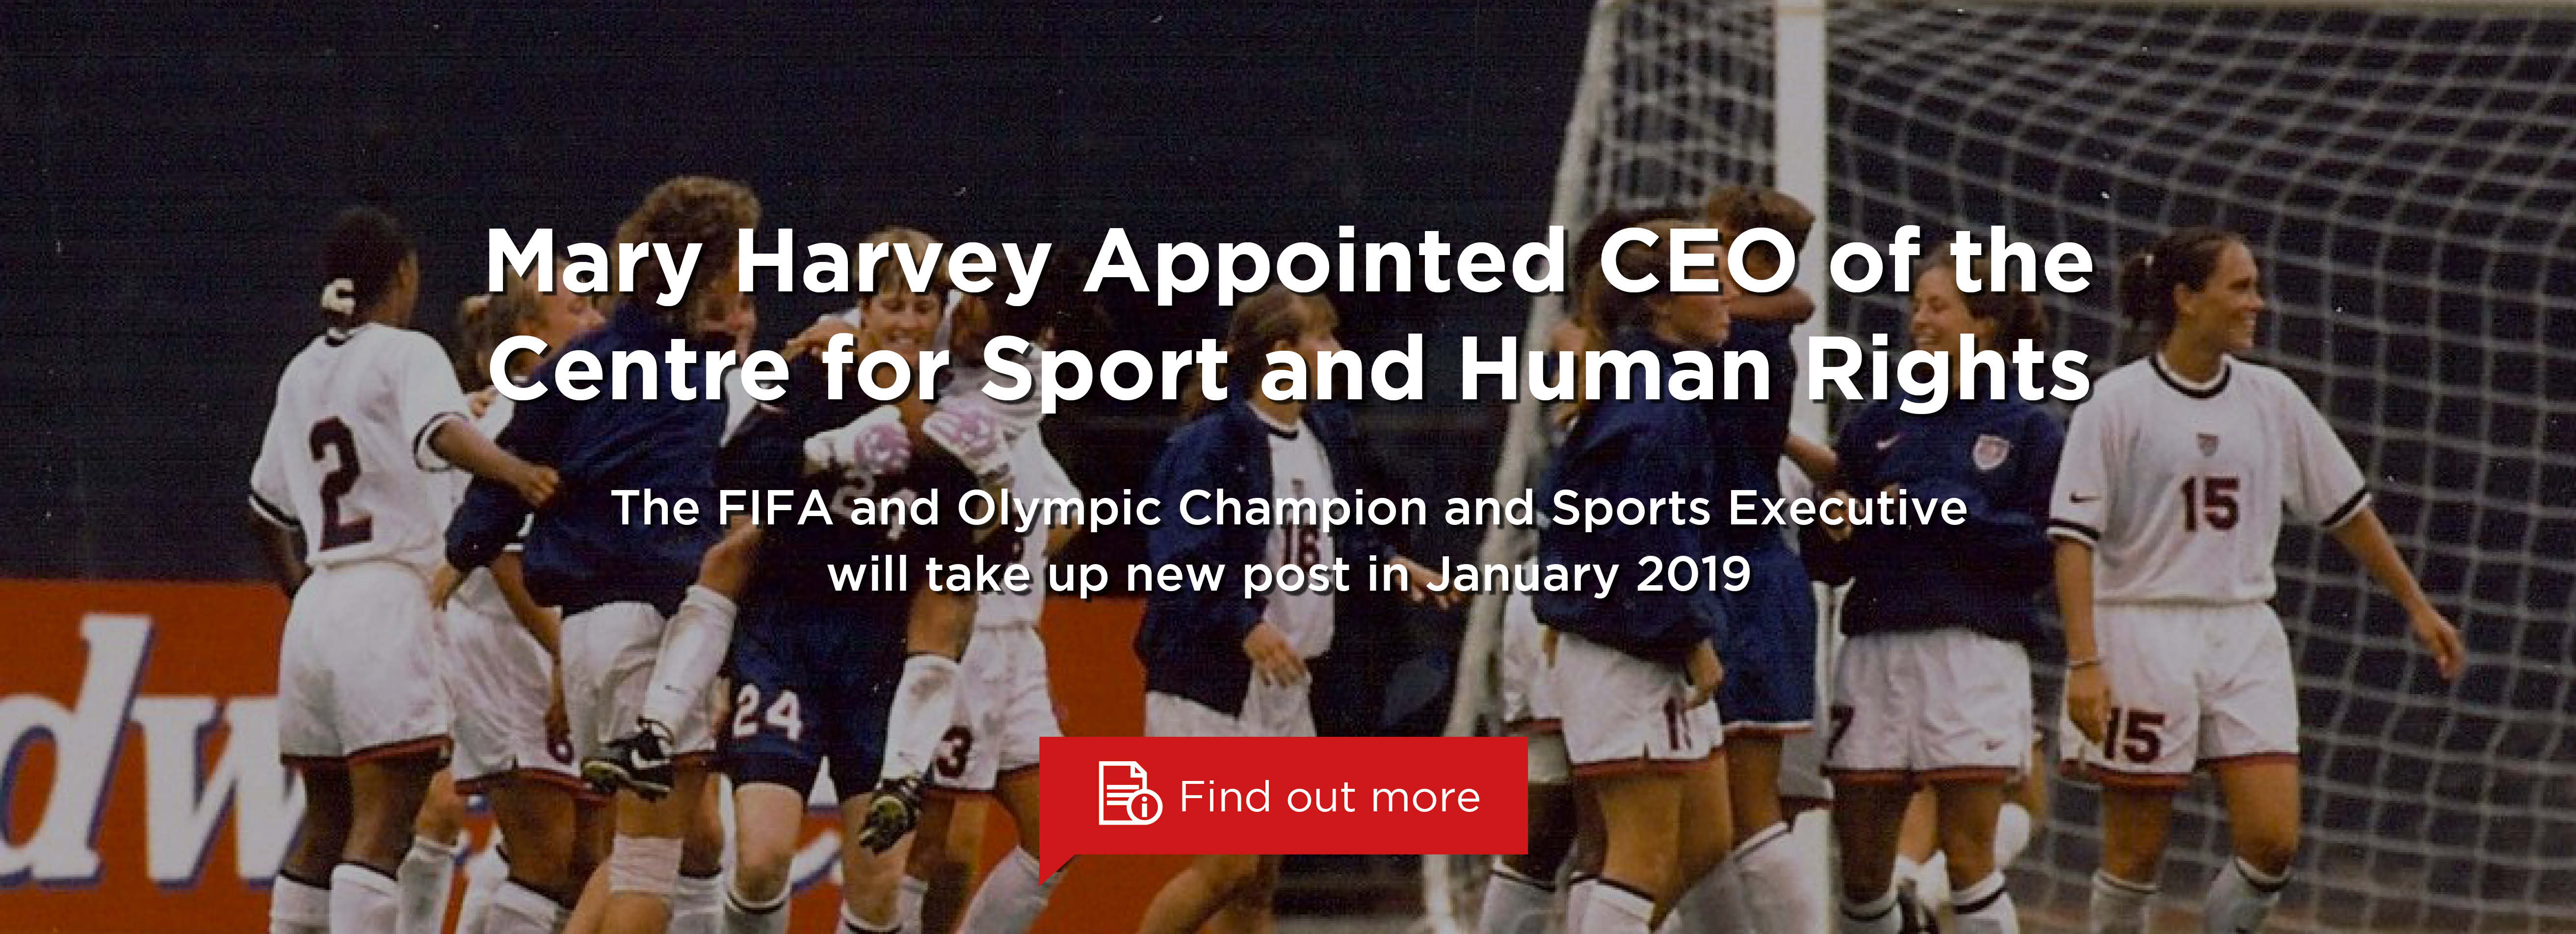 Mary Harvey Appointed CEO of CSHR